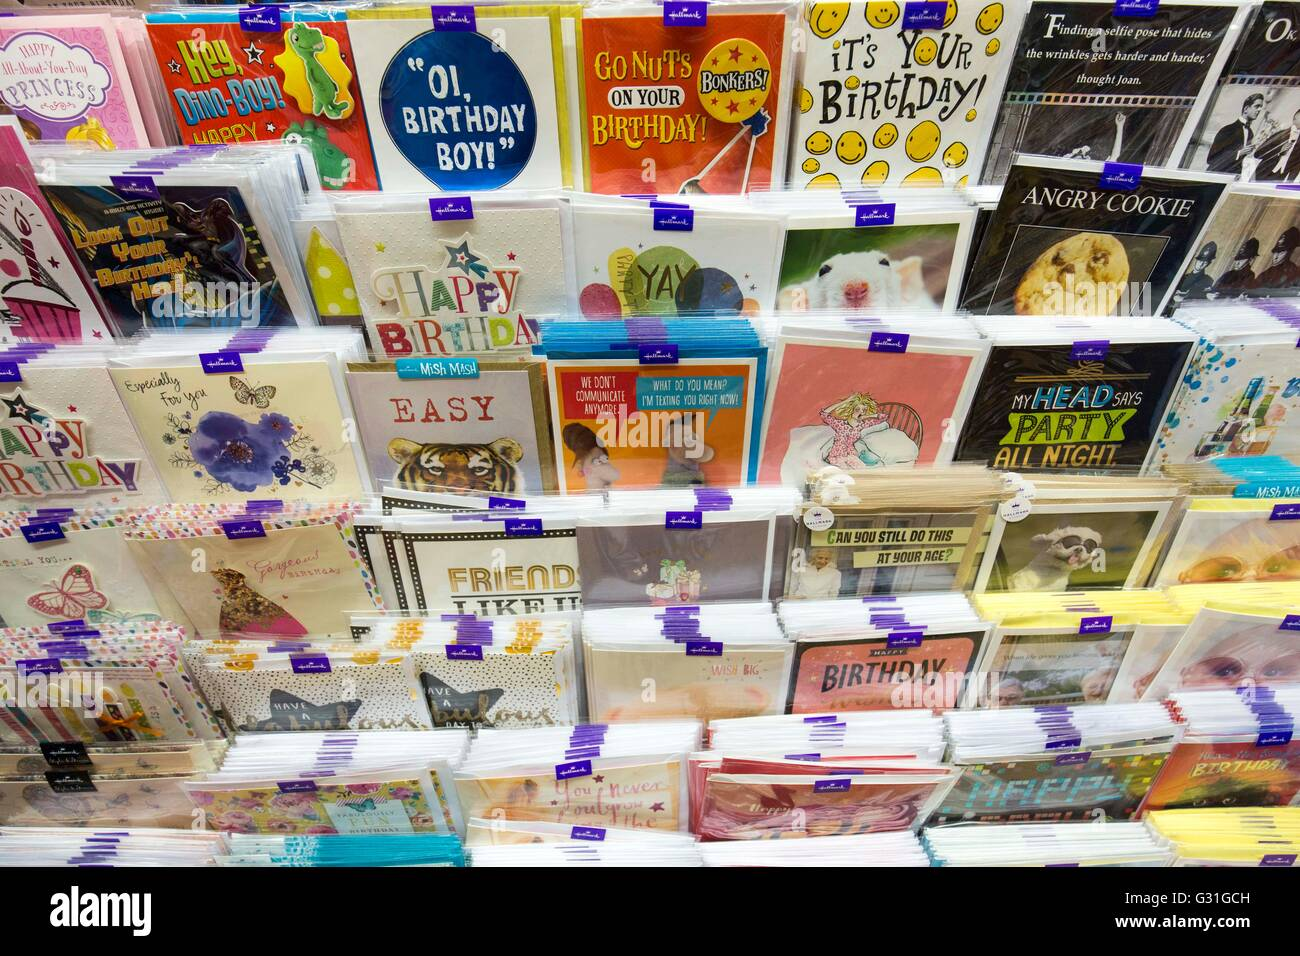 greetings cards display in a supermarket - Stock Image